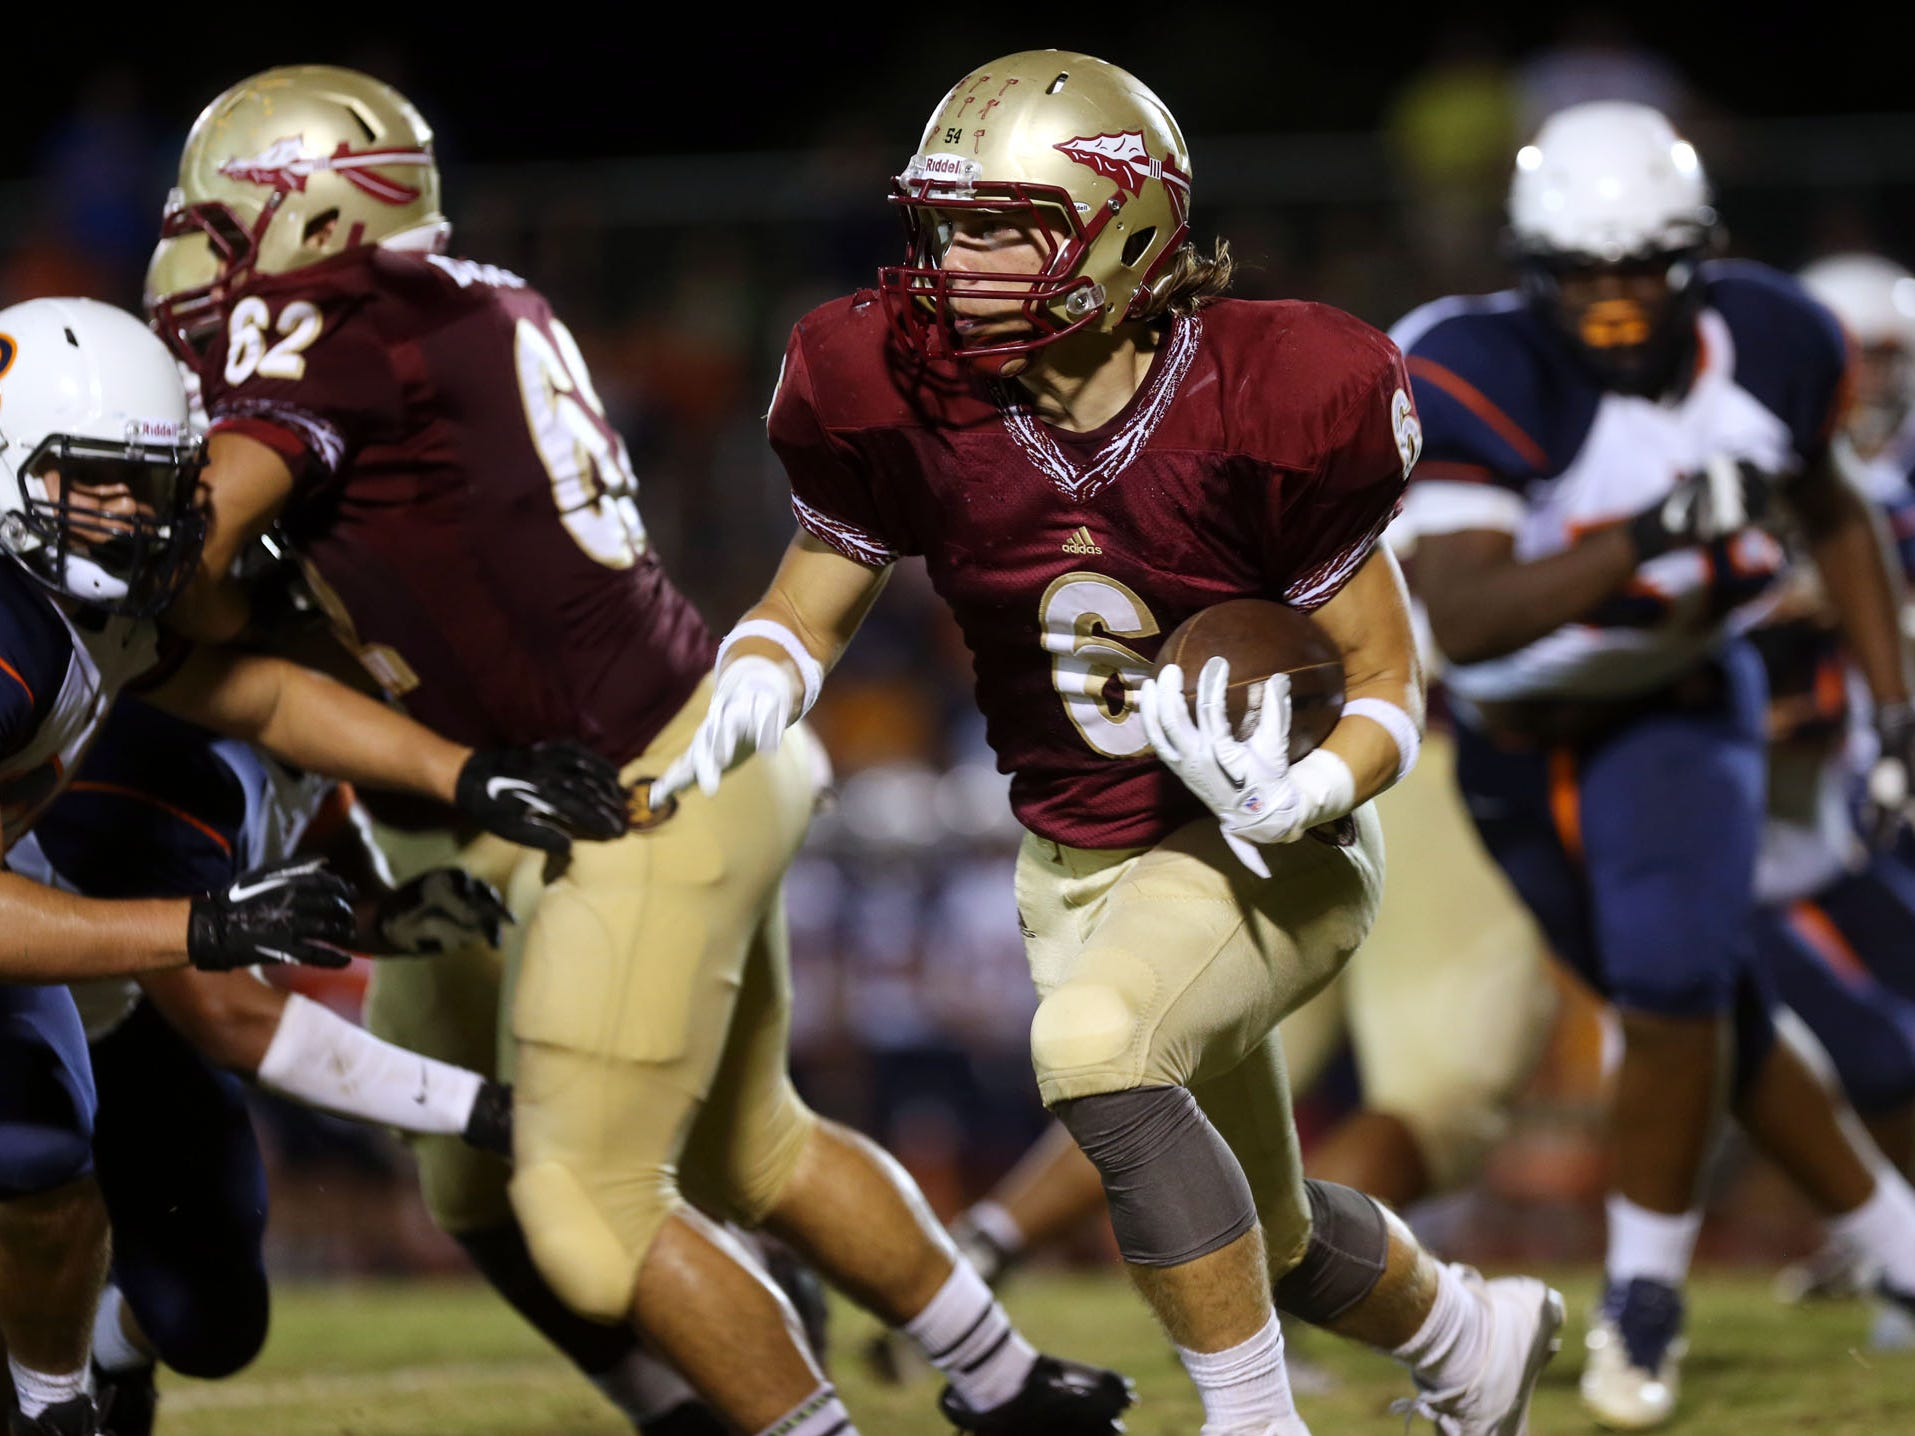 Riverdale and running back Austin Bryant have lost just once this season - to Blackman.